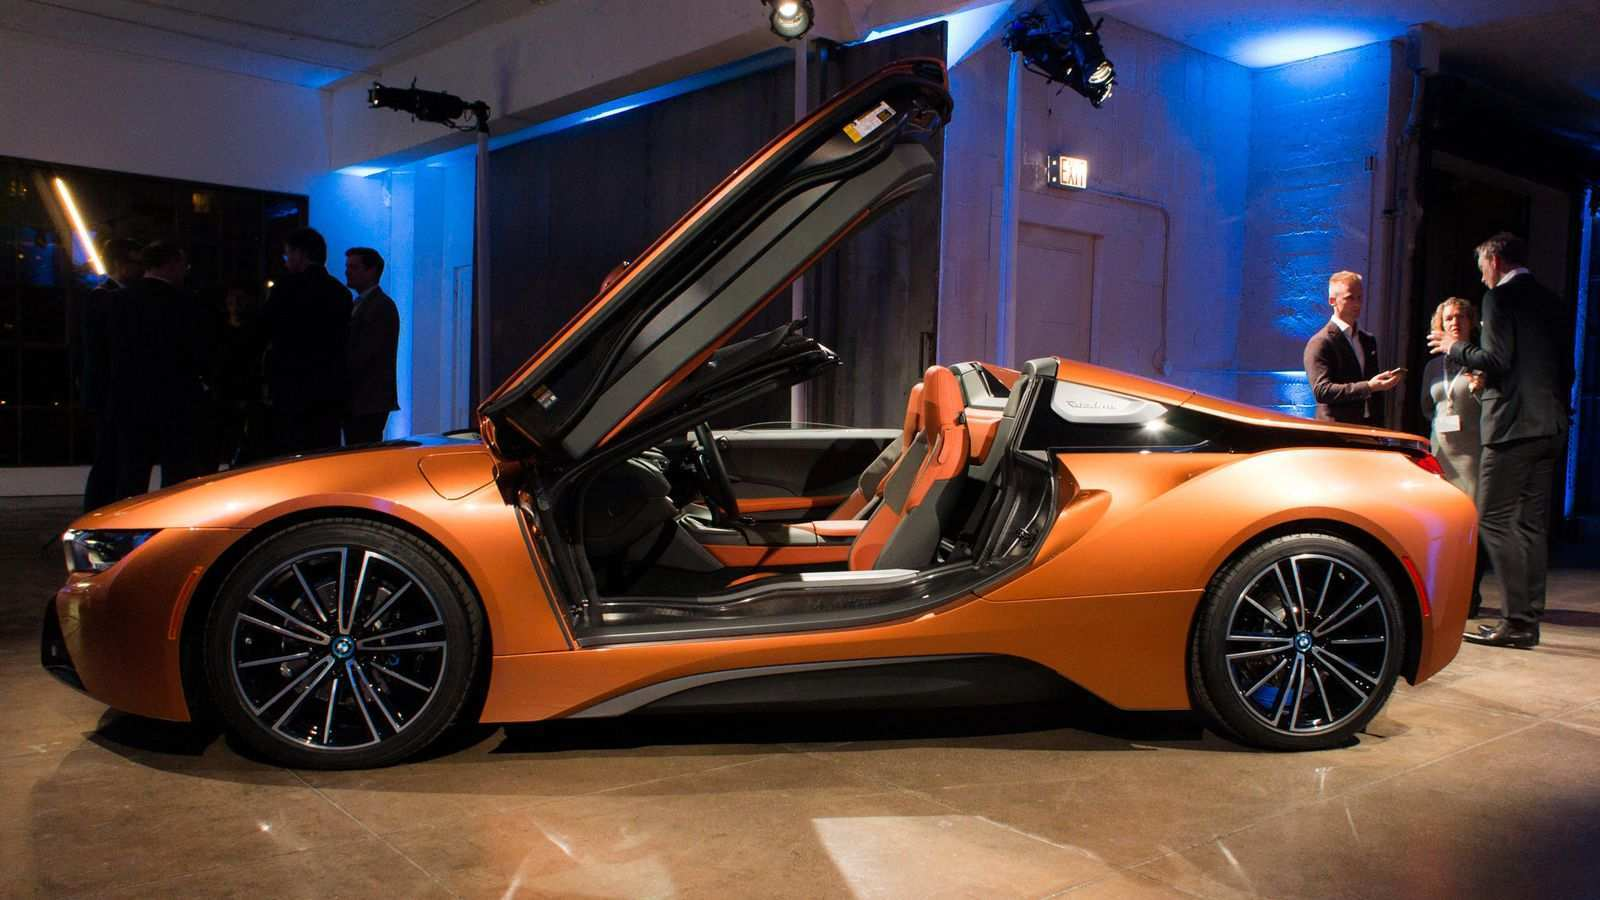 81 The 2019 Bmw I8 Roadster Concept by 2019 Bmw I8 Roadster